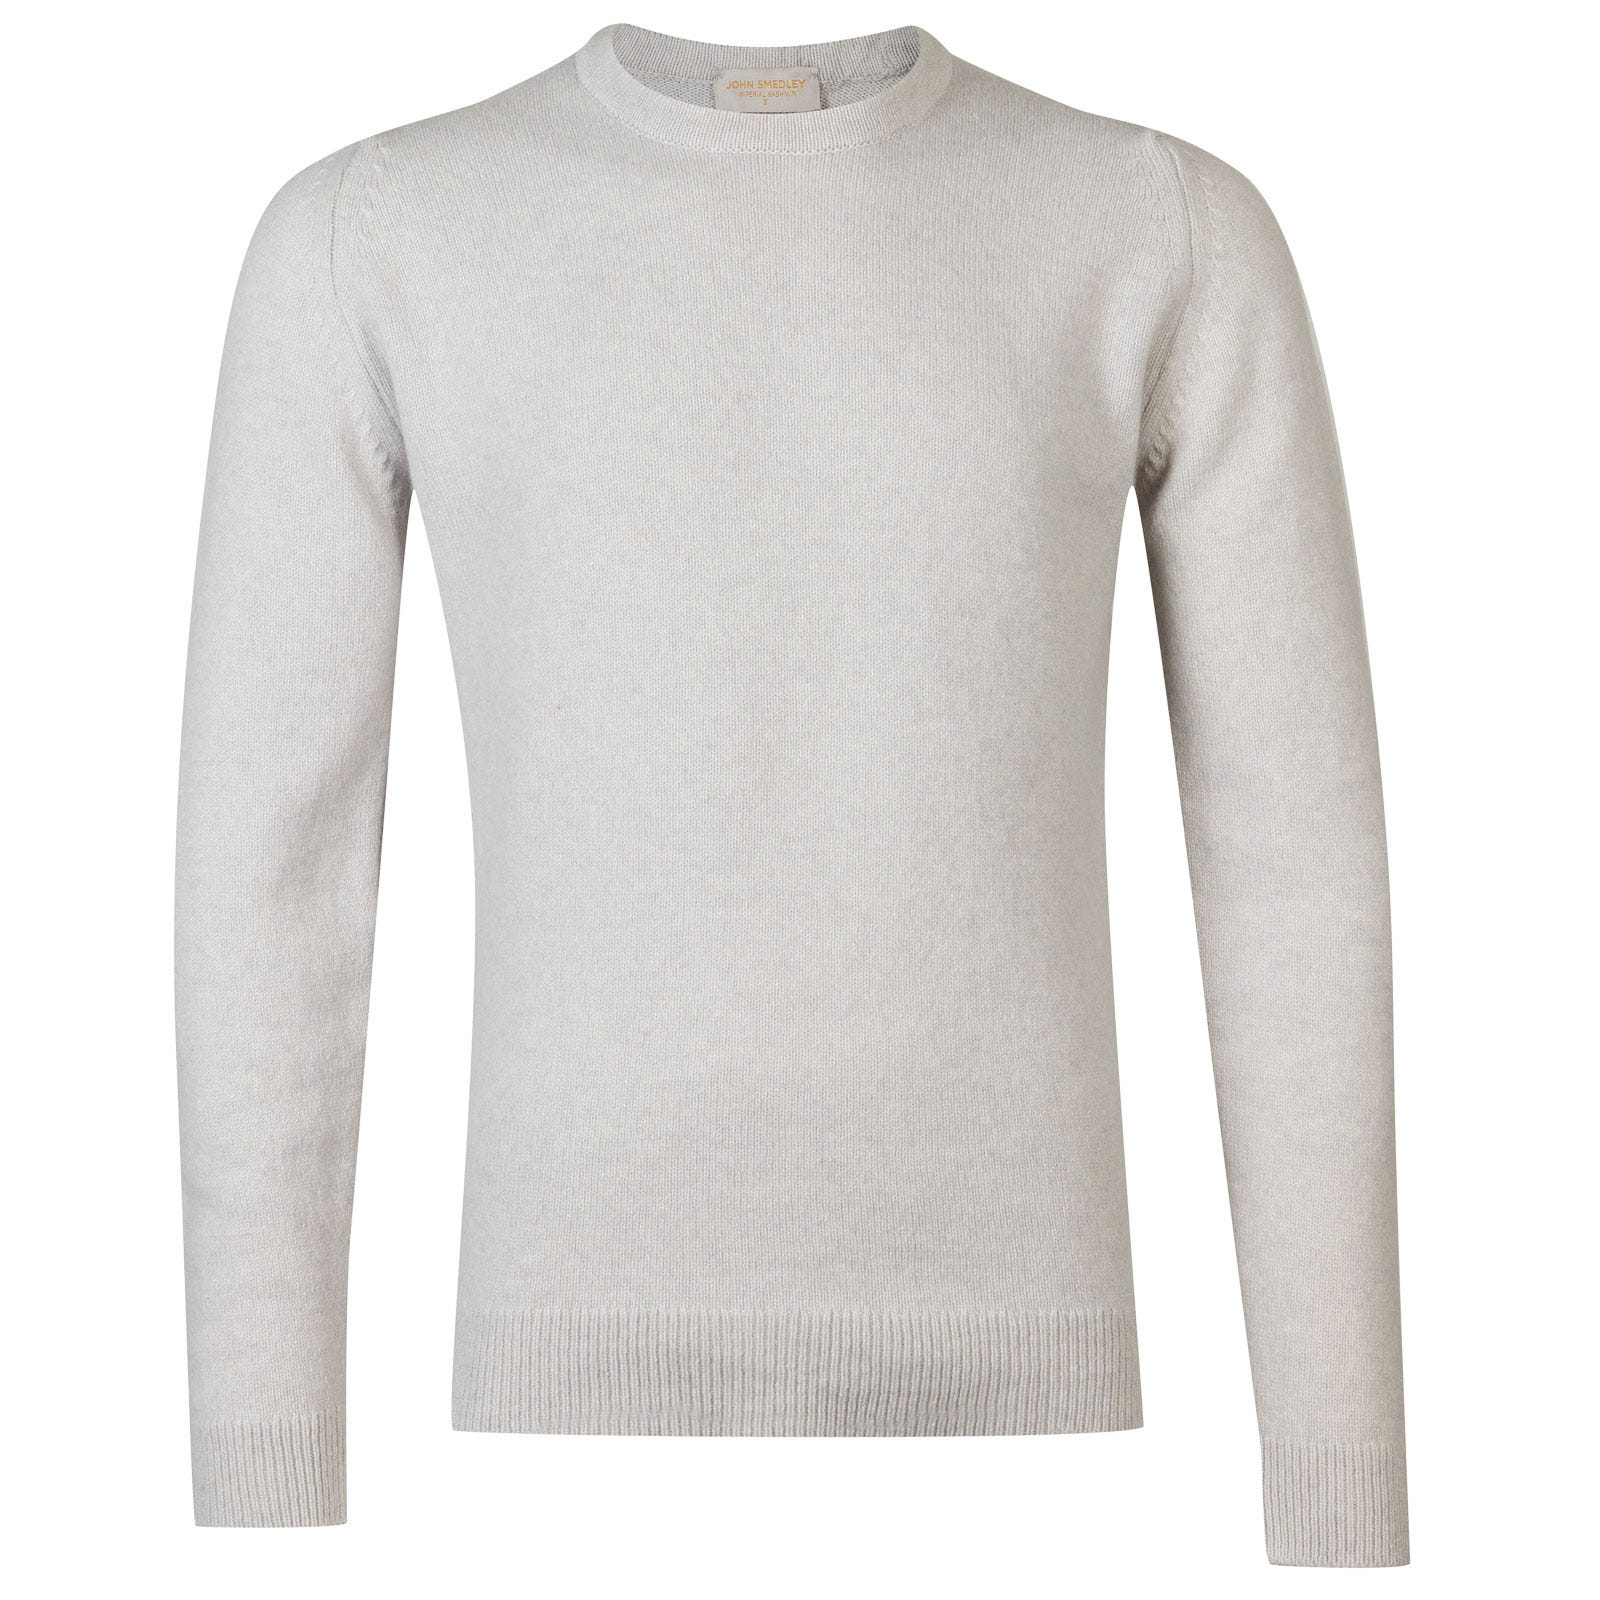 John Smedley Crowford Wool and Cashmere Pullover in Soft Grey-M